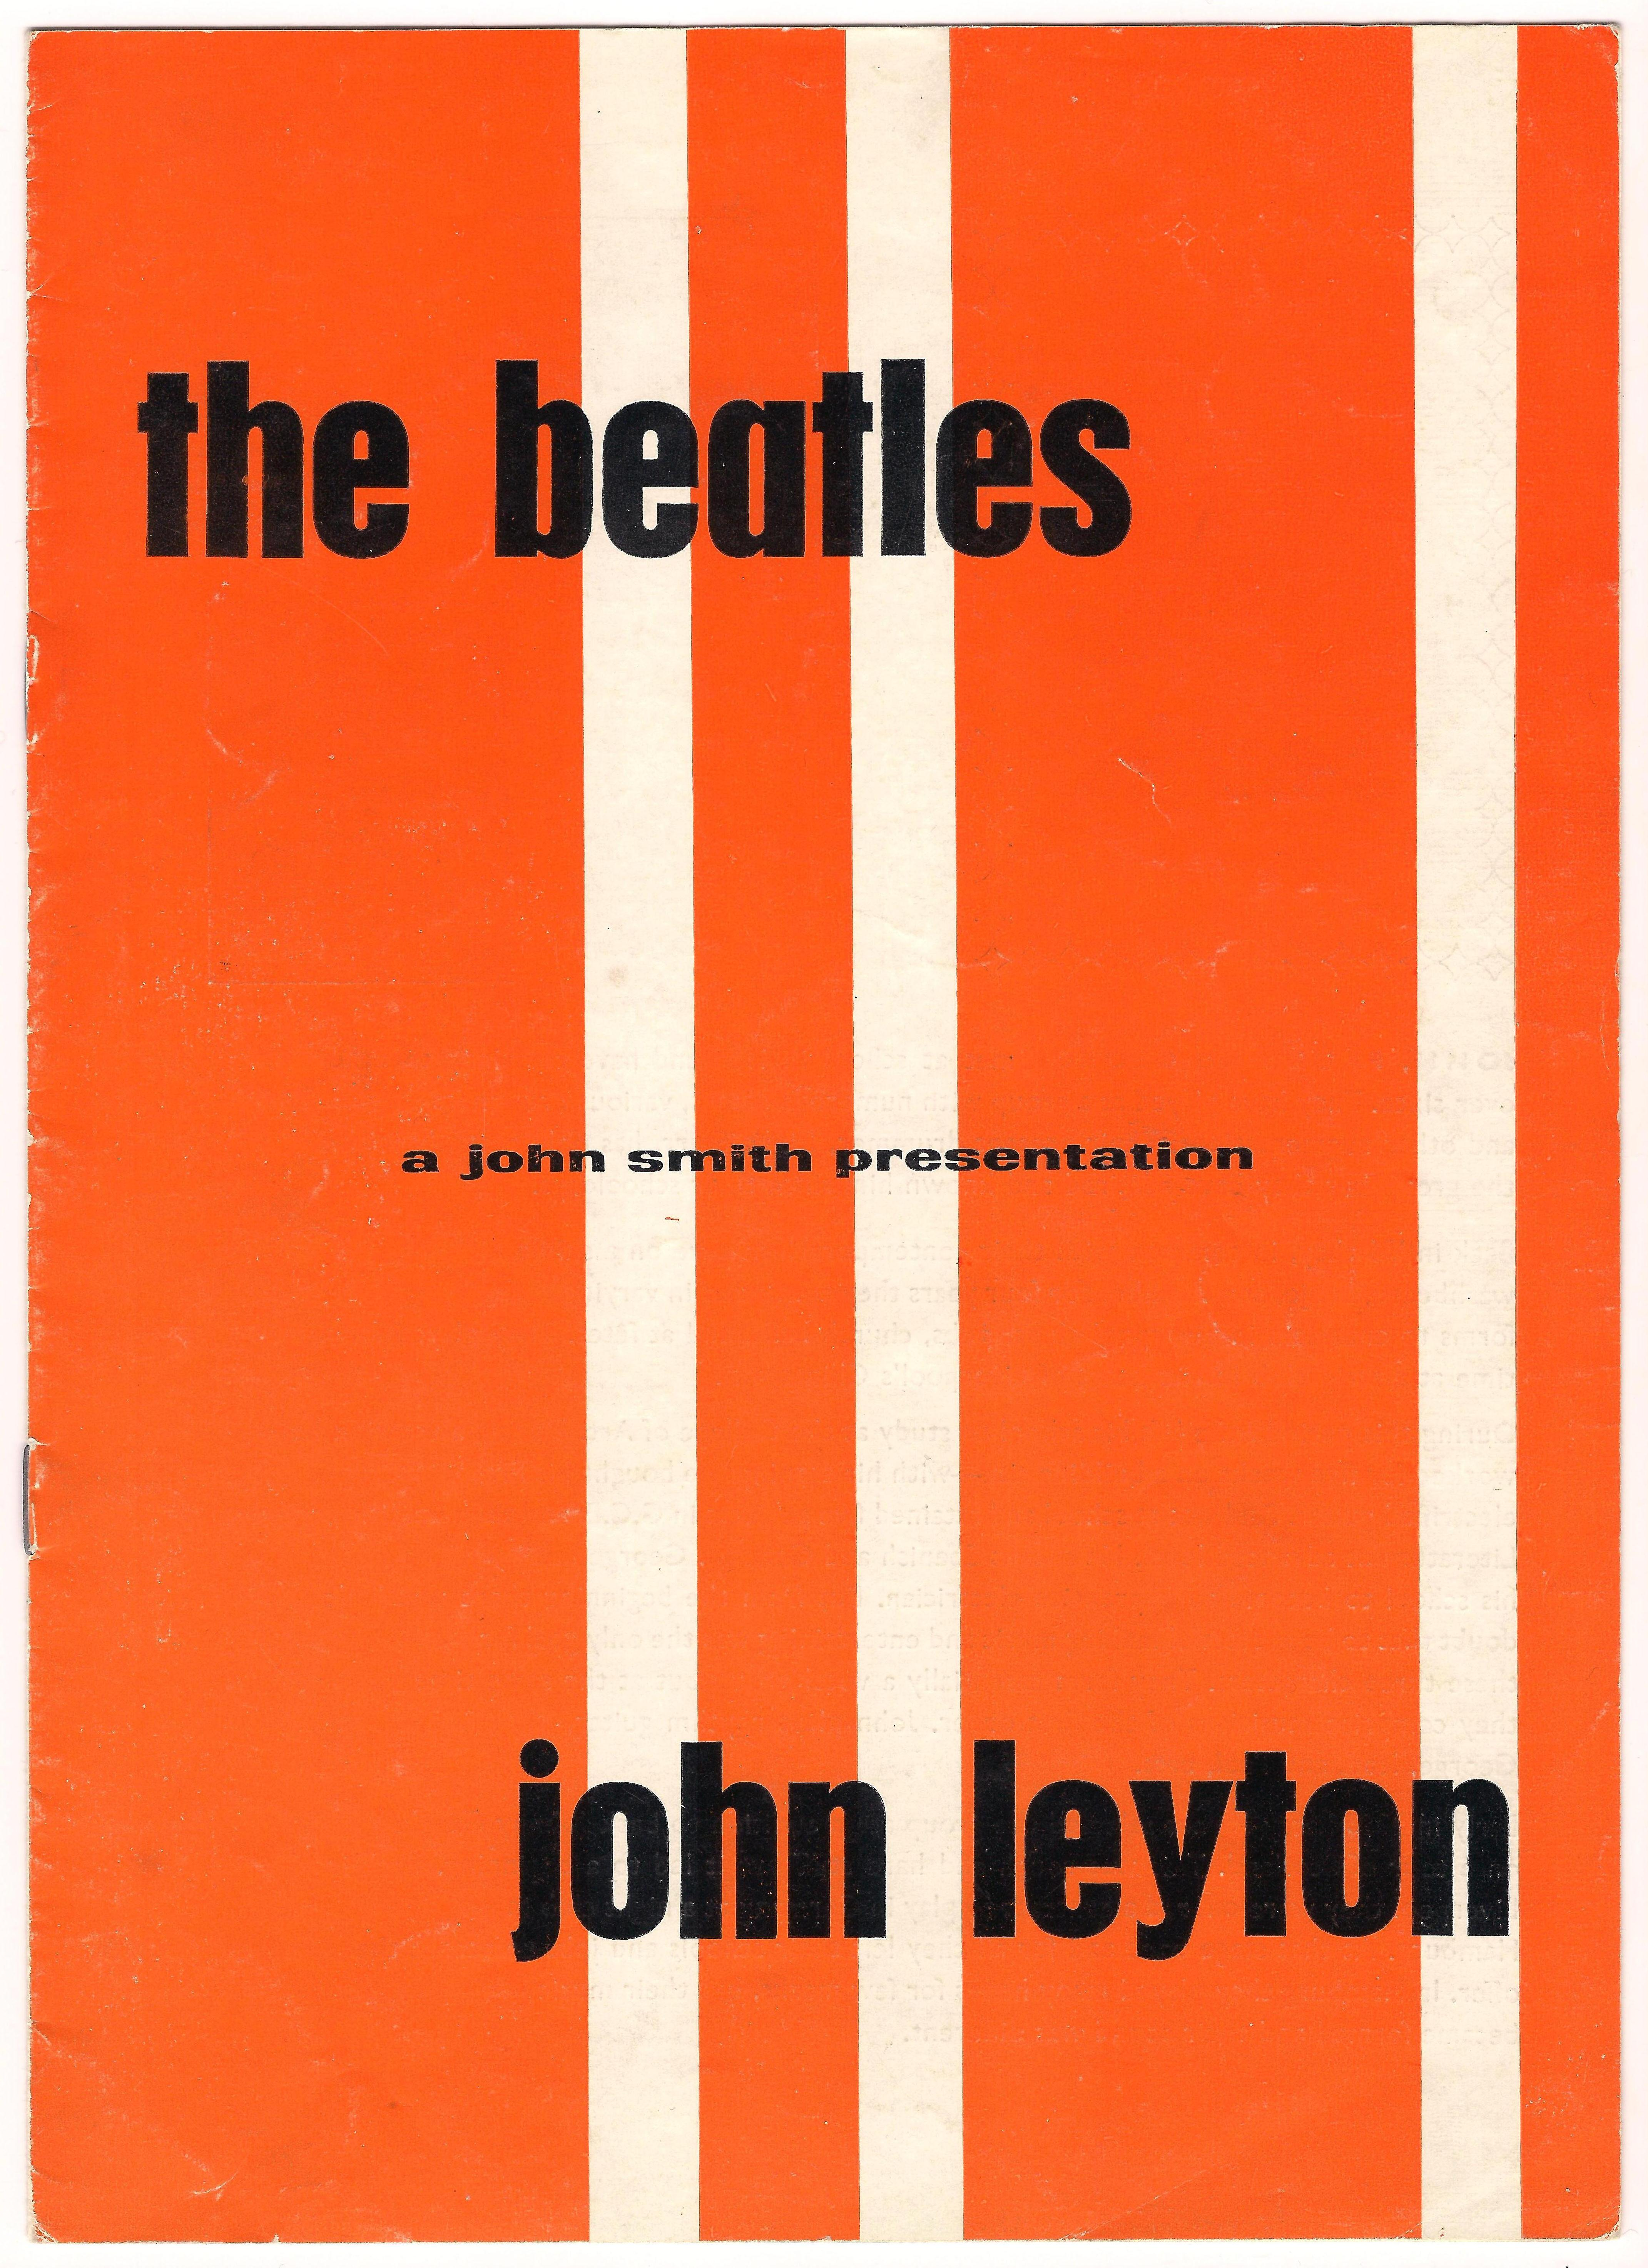 Beatles & John Leyton programme April 25, 1963.jpg